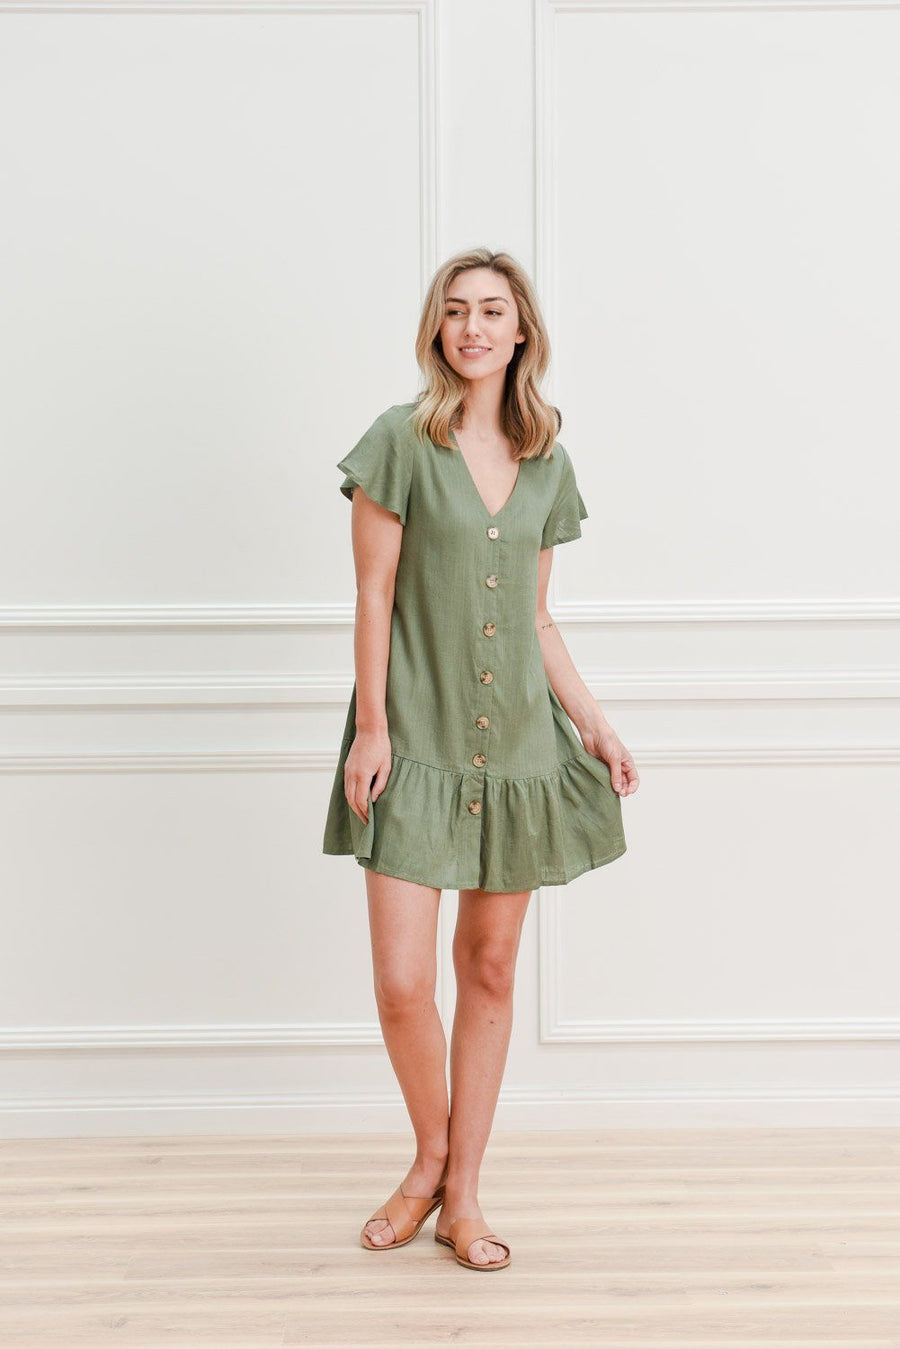 Kyree Button Dress | Khaki Linen Dress Gray.Label